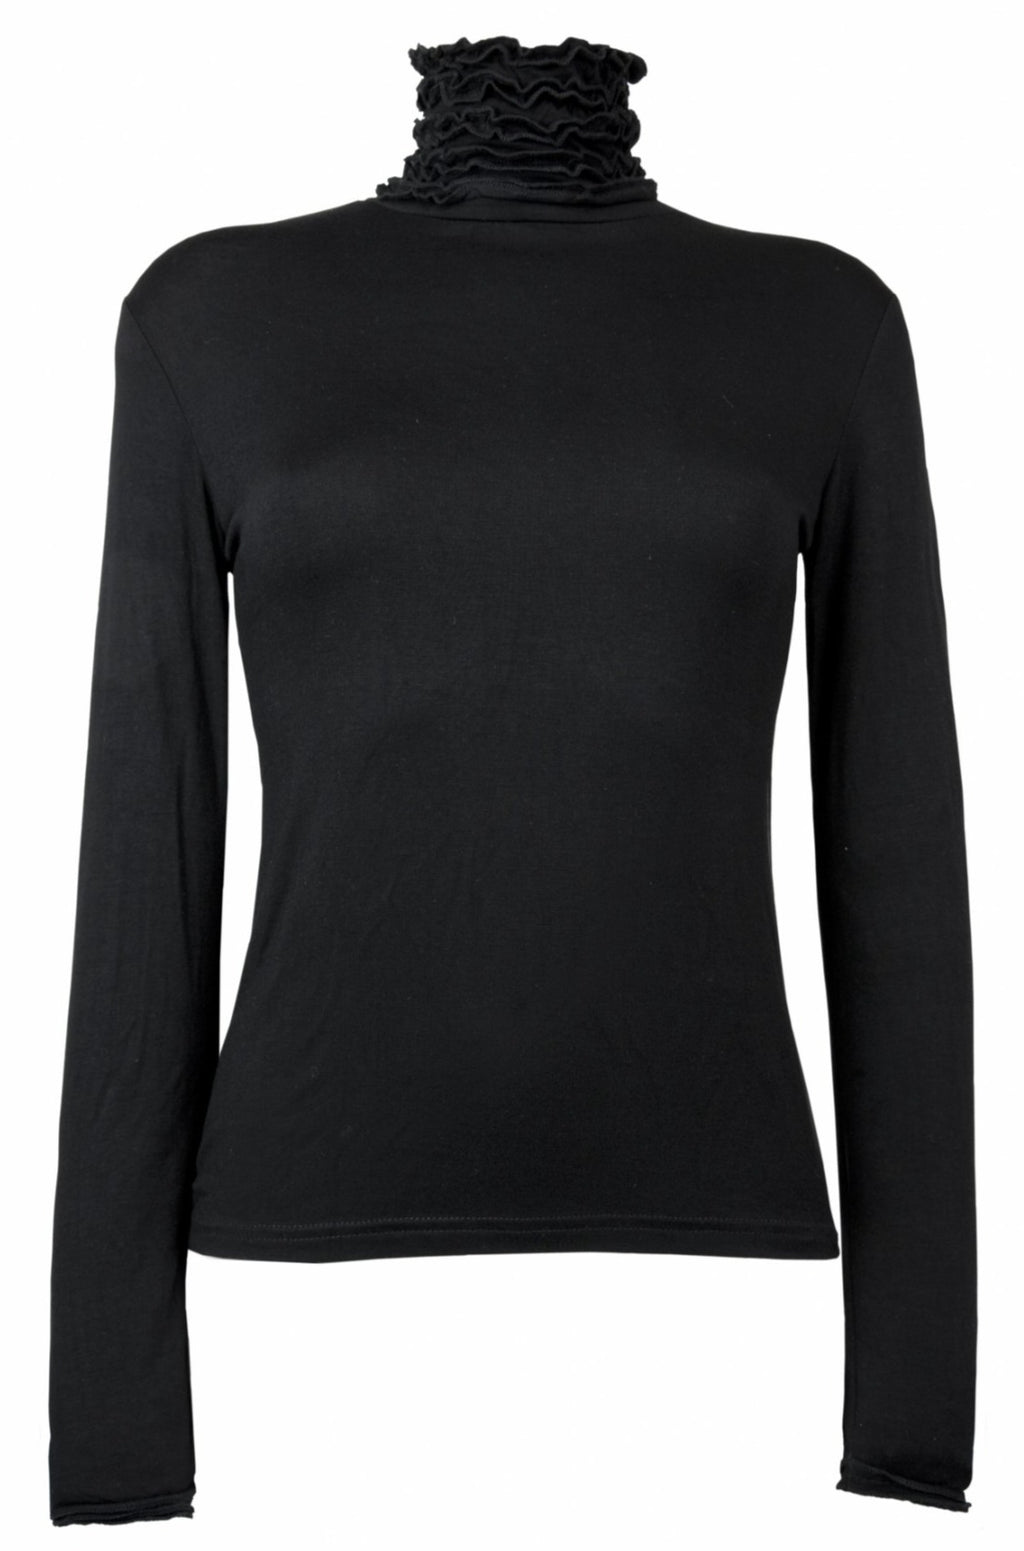 Fine Knit Ruffle Polo Neck Jumper - Black